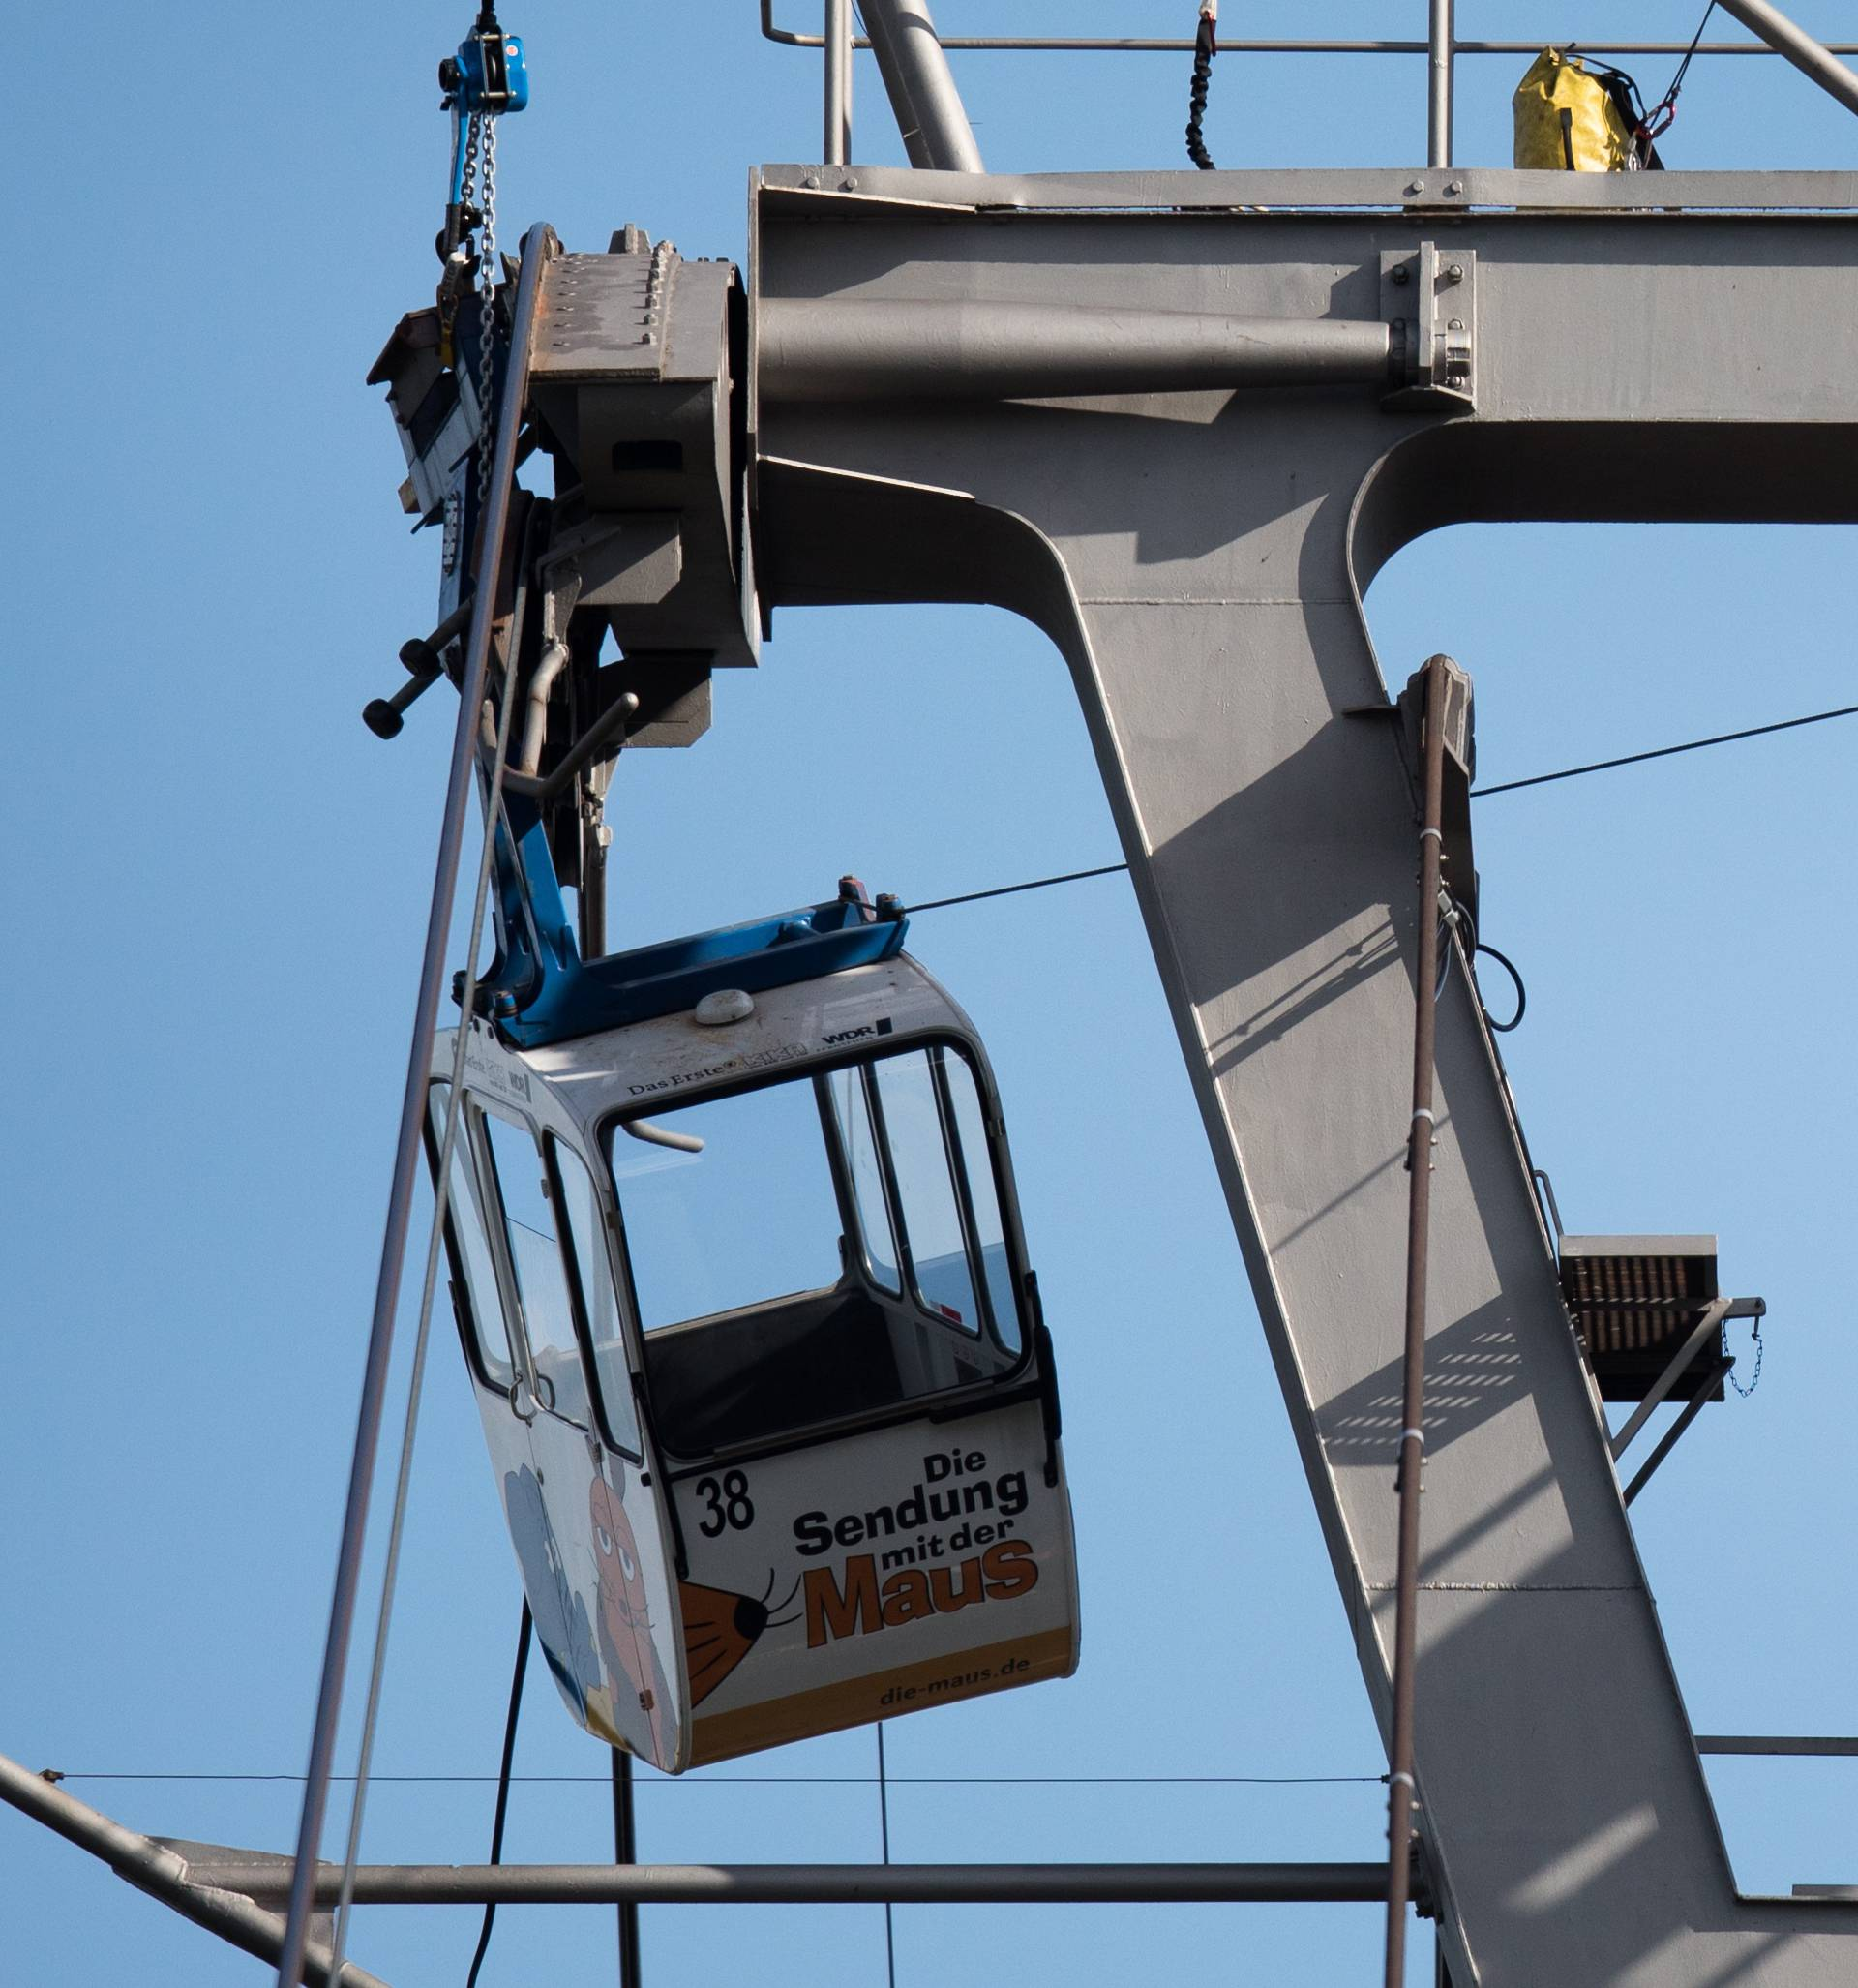 People rescued from stuck cable car gondola